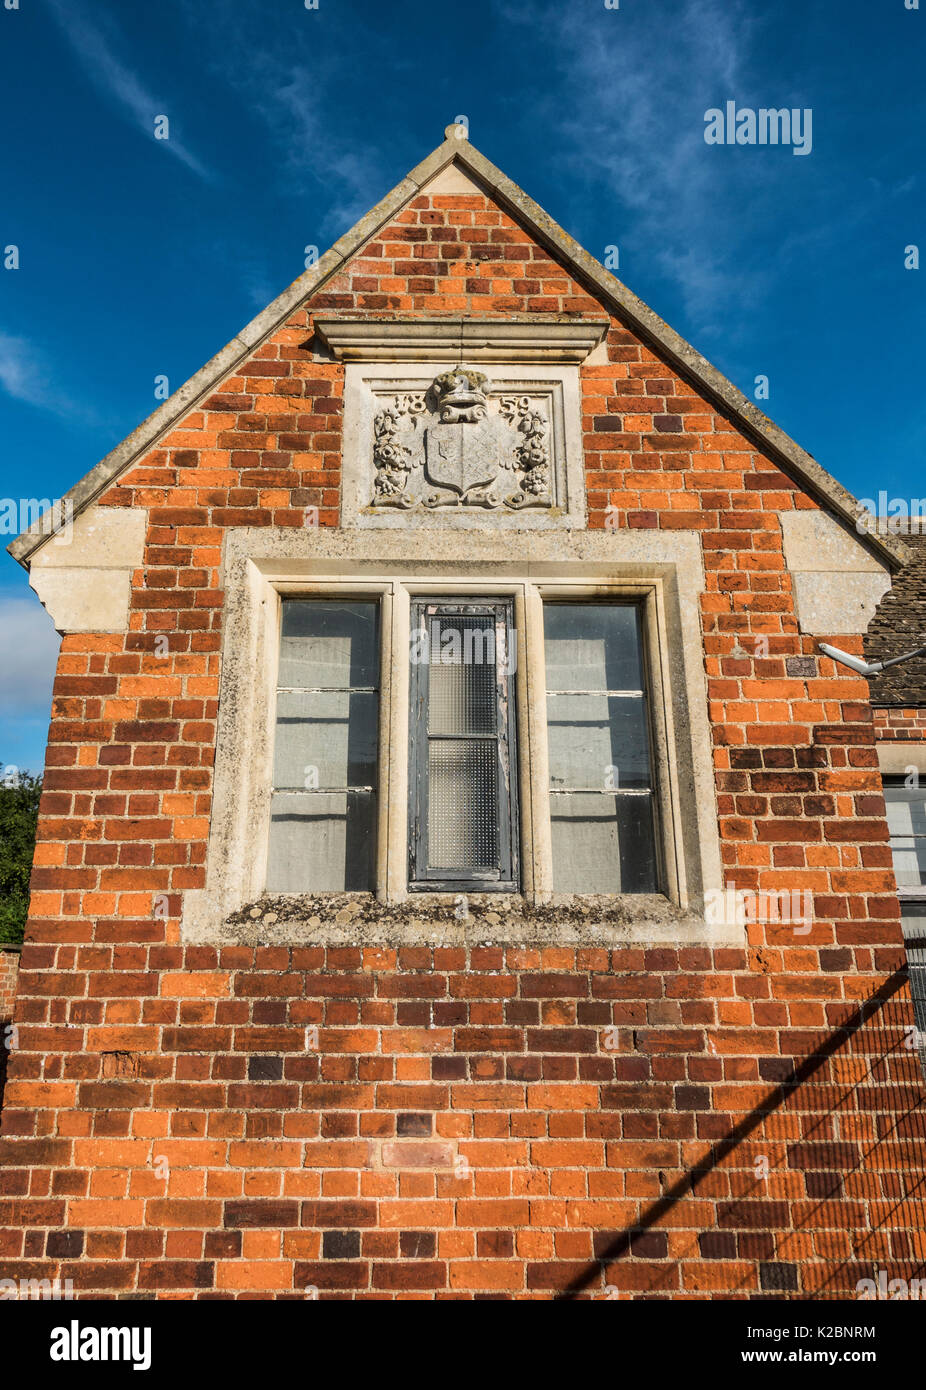 Gable wall of an old, disused village primary school, with decorative stone plaque with the 1859 year of build. Langtoft, Lincolnshire, England, UK. - Stock Image